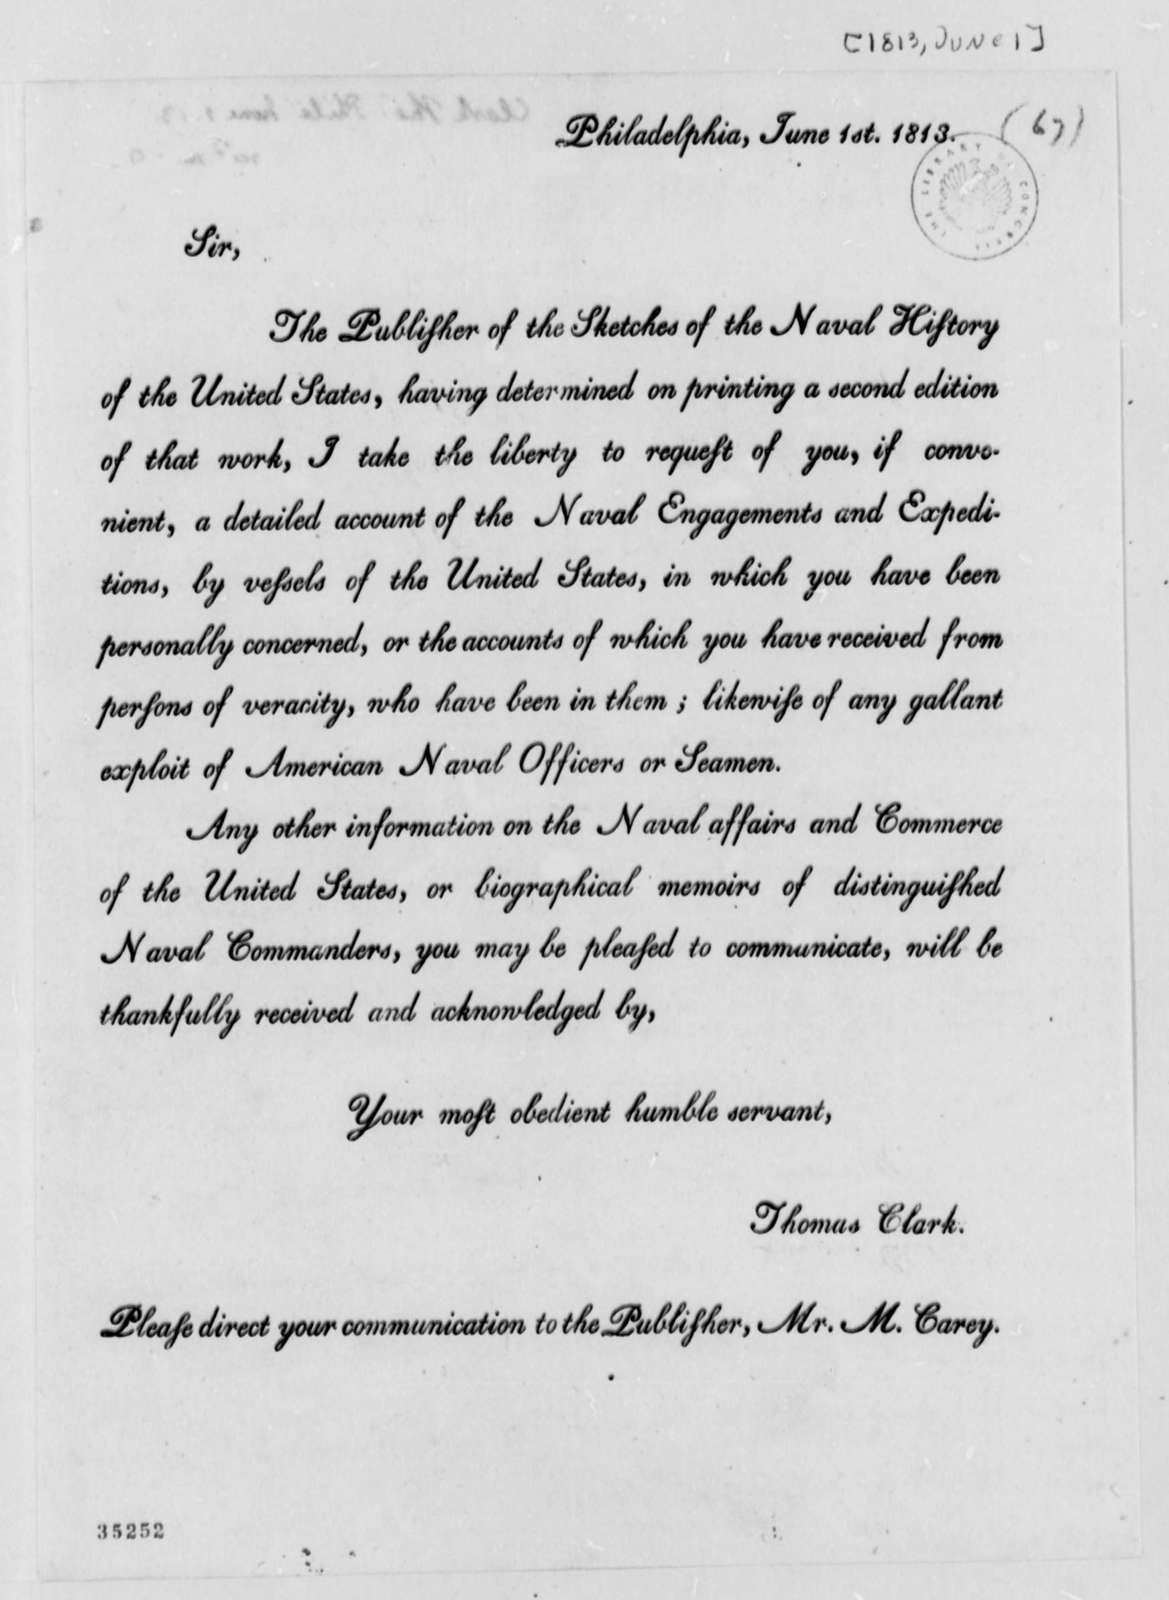 Thomas Clark to Thomas Jefferson, June 1, 1813, Circular Letter